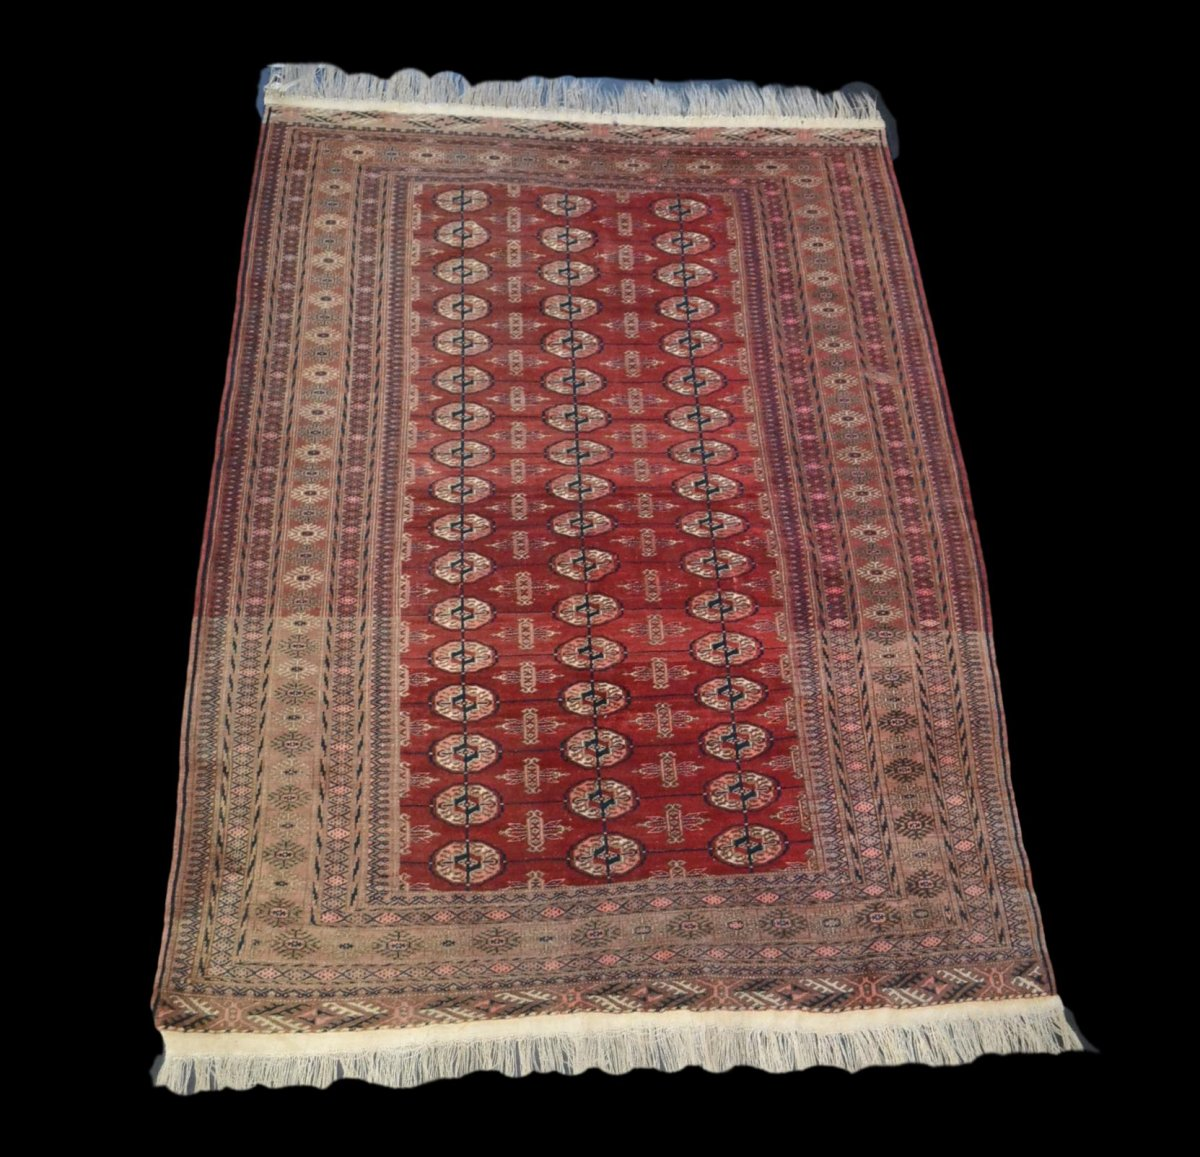 Bukhara-tekke Rug, Central Asia, 133 Cm X 180 Cm, Hand-knotted Wool, Before 1950,